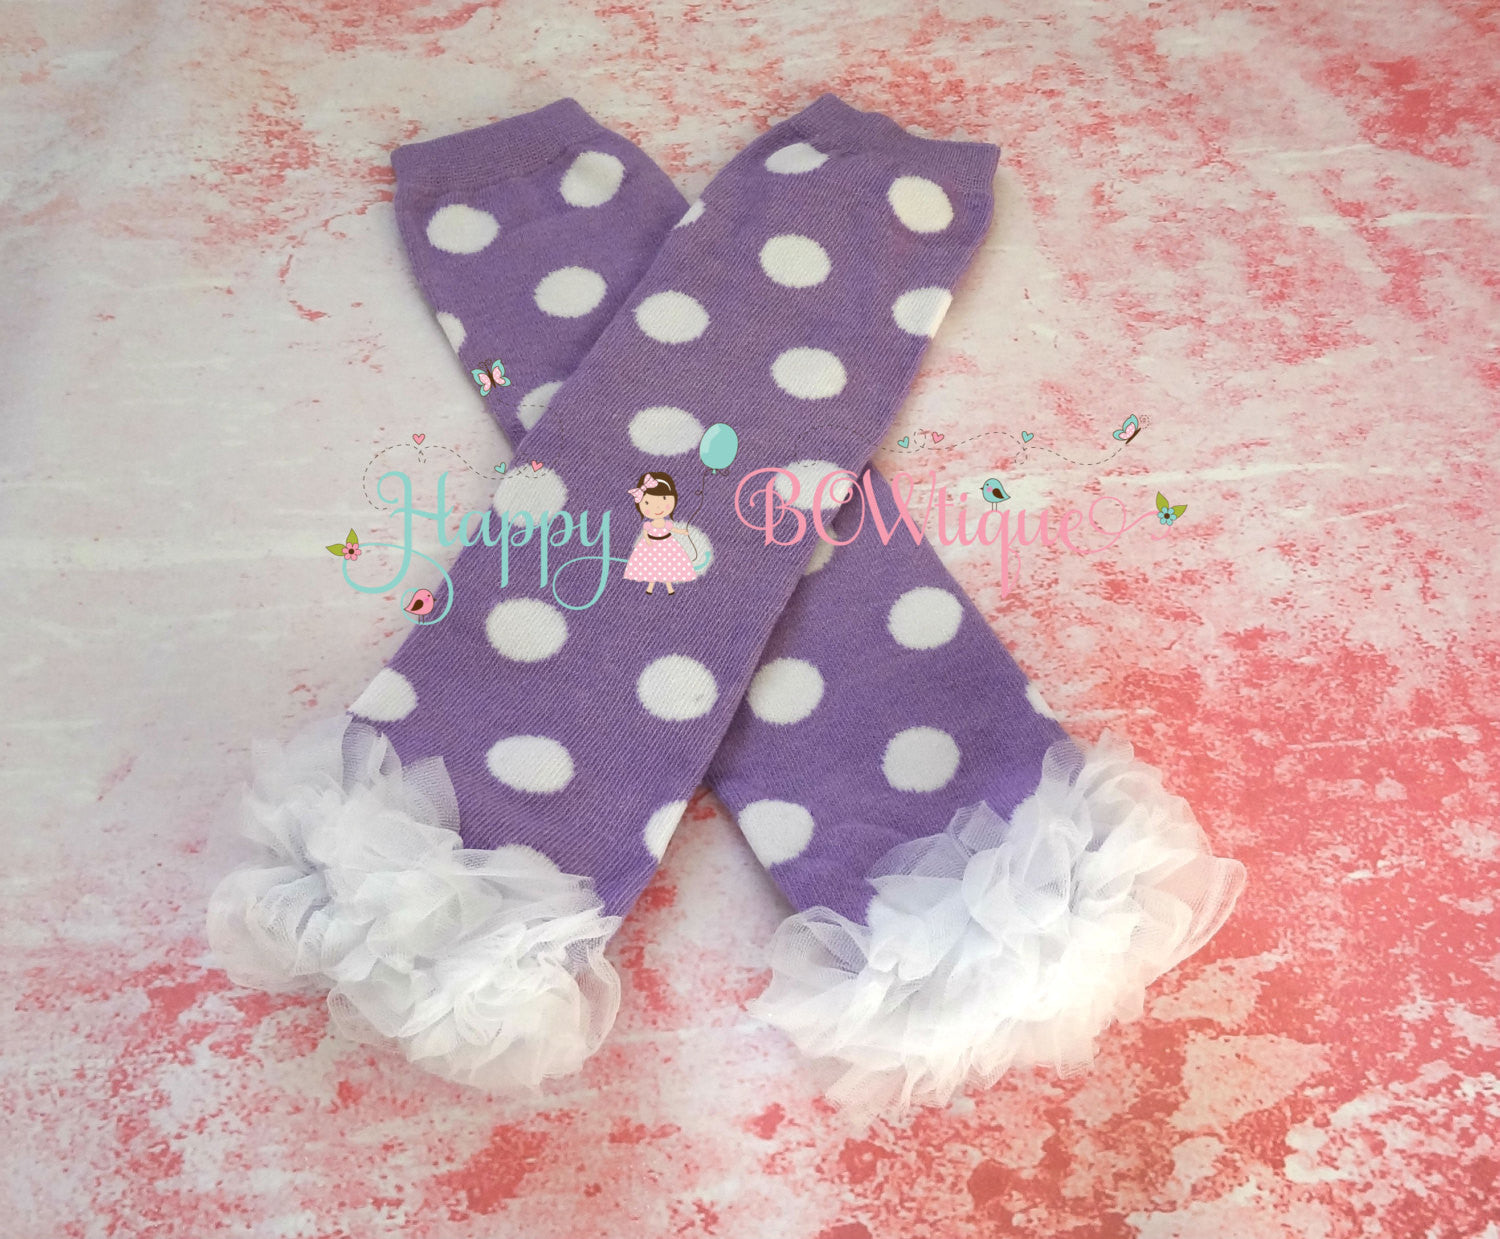 Lavender Dots Ruffle Chiffon leg warmers set - Happy BOWtique - children's clothing, Baby Girl clothing